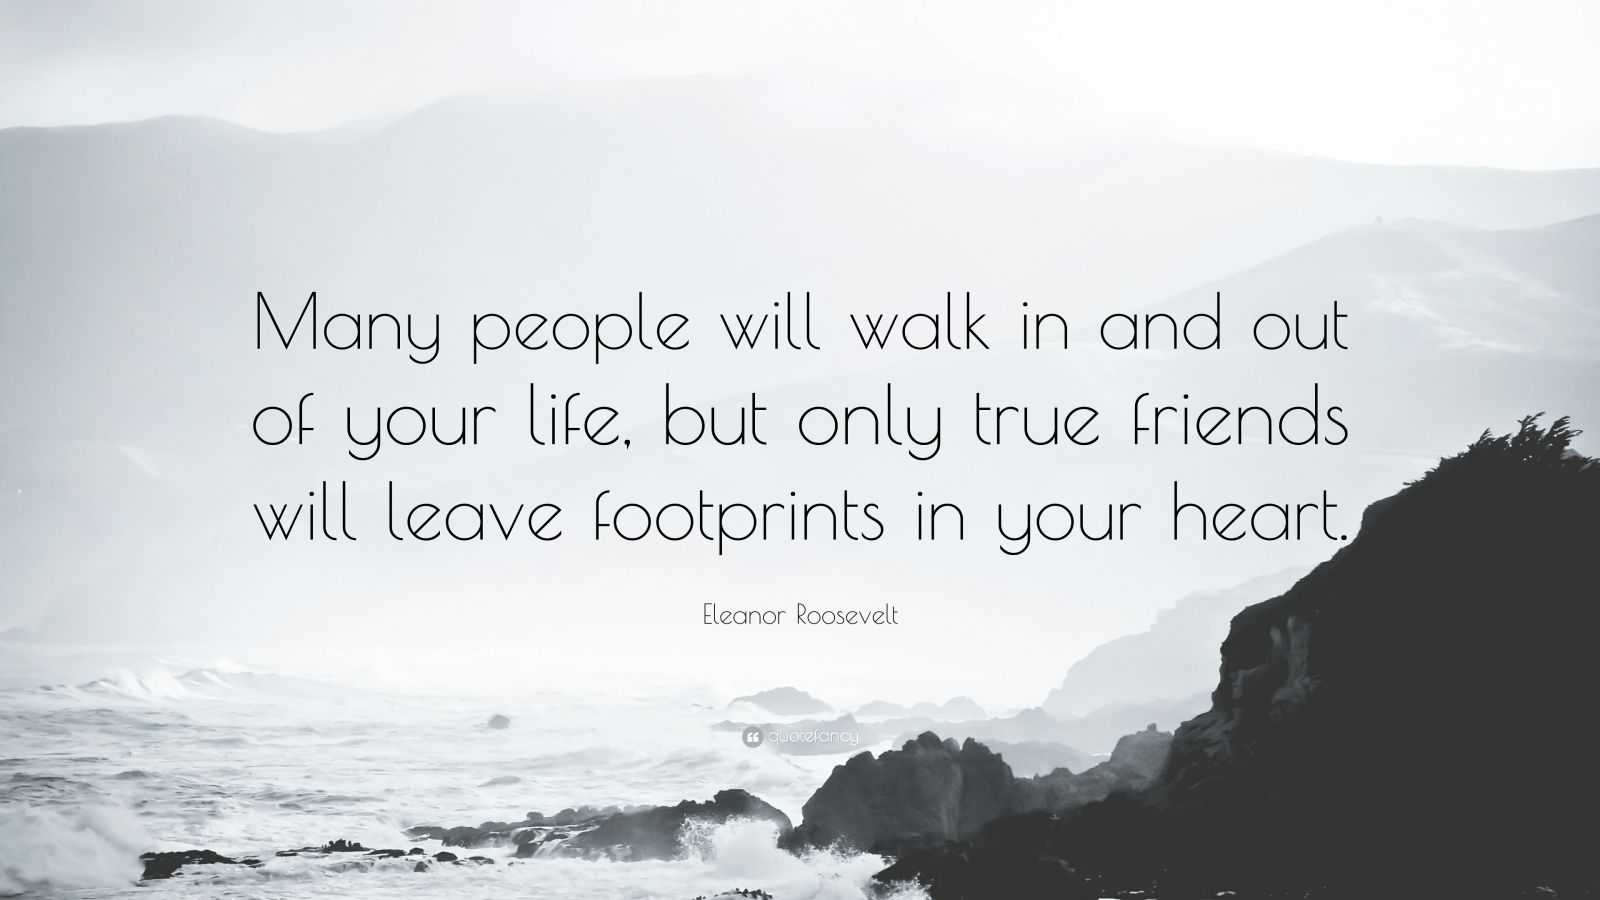 "Friendship Quotes: ""Many people will walk in and out of your life, but only true friends will leave footprints in your heart."" — Eleanor Roosevelt"